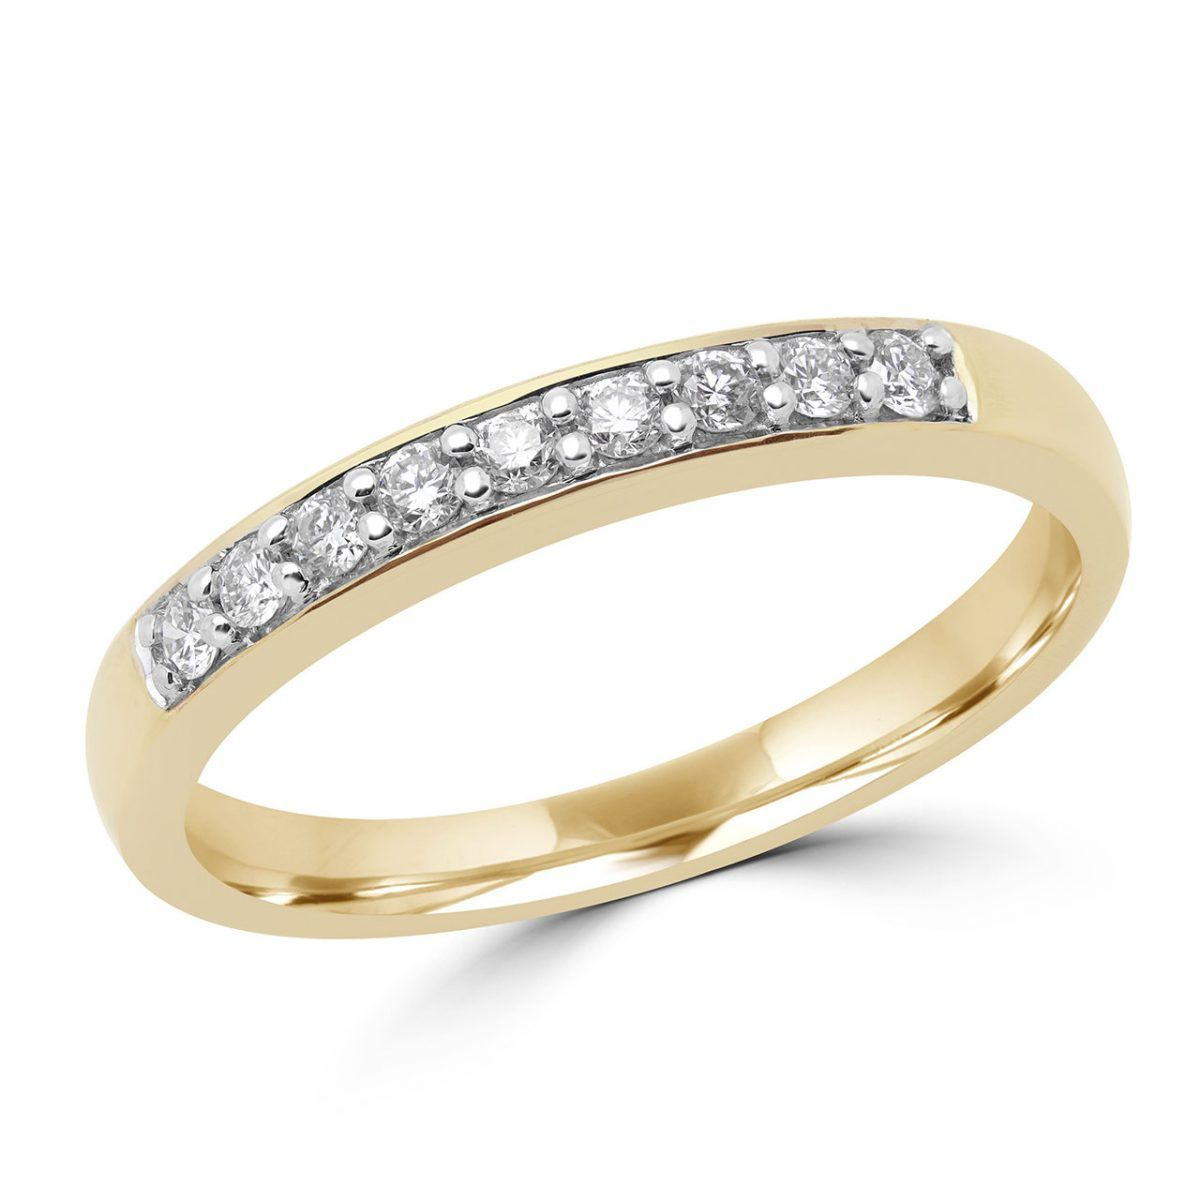 This timeless semi-eternity diamond wedding band, features nine round cut diamond accents, prong set in durable 10K yellow gold. Designed to stack well with almost any engagement ring, this piece makes a great complement to a bridal set, an ideal wedding band to wear by itself, or even as an addition to your collection of stackable rings. A smooth and refined design, bright white diamonds, and affordable pricing make this piece a smart purchase for any occasion.  Thin Band Pairs Well with Most E